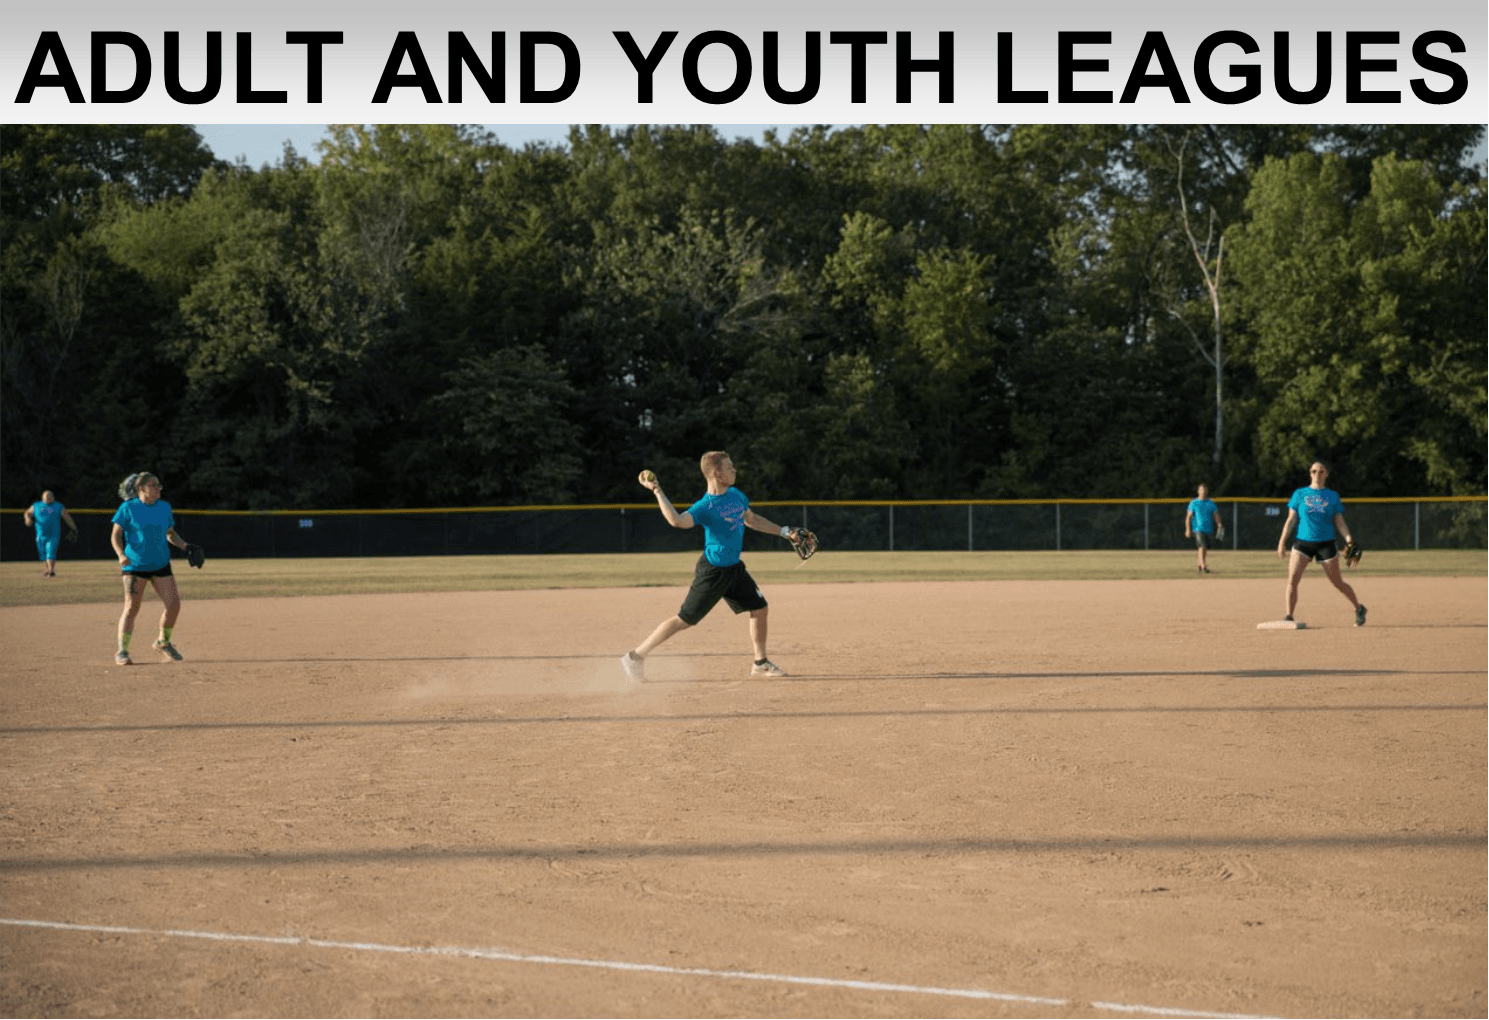 ADULT AND YOUTH LEAGUES